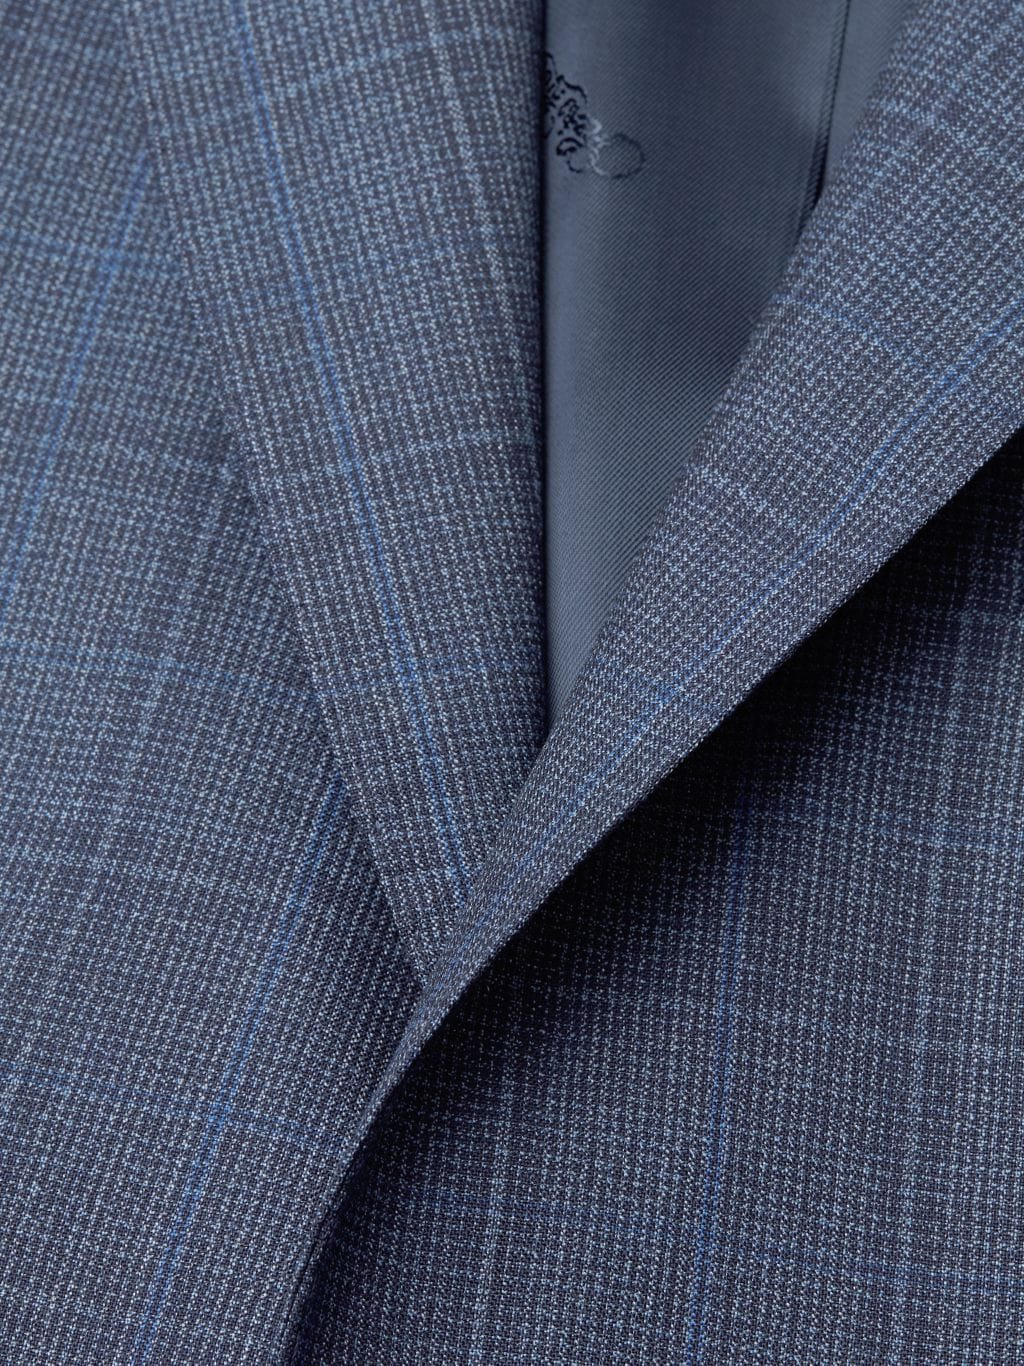 Saks Fifth Avenue Made in Italy Modern-Fit Plaid Wool Sportcoat